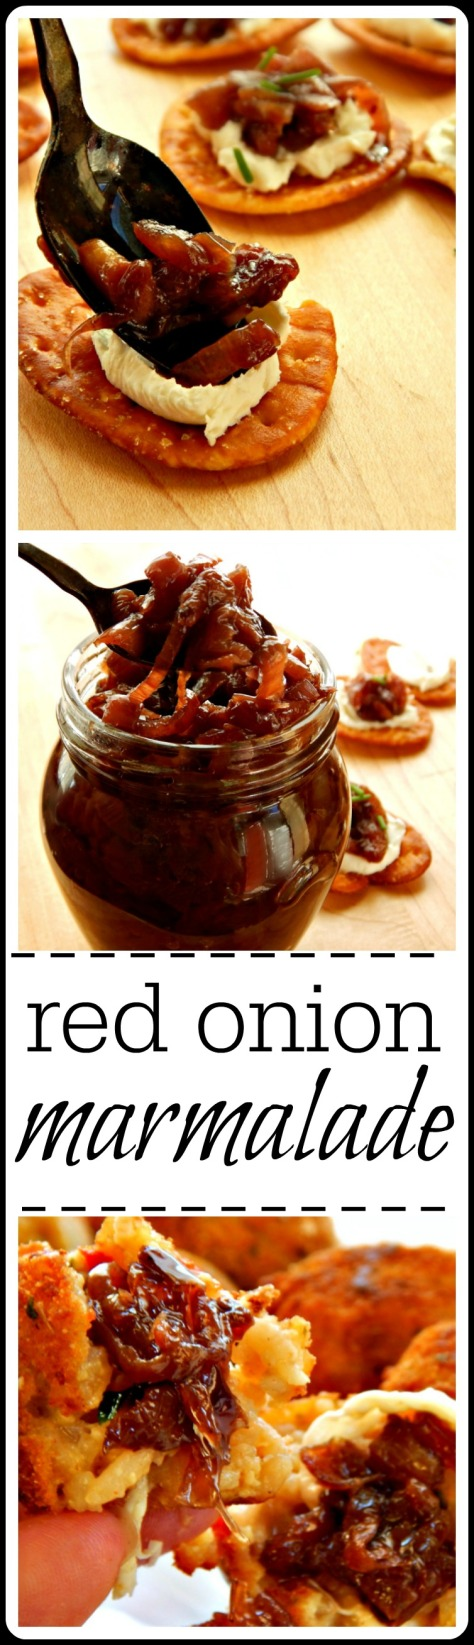 Call it Red Onion Marmalade, Jam or Confit, - it's a rich, caramelized red onion mixture to use as a condiment for all kinds of things. Sandwiches, crackers & cream cheese, burgers. The list goes on and on...